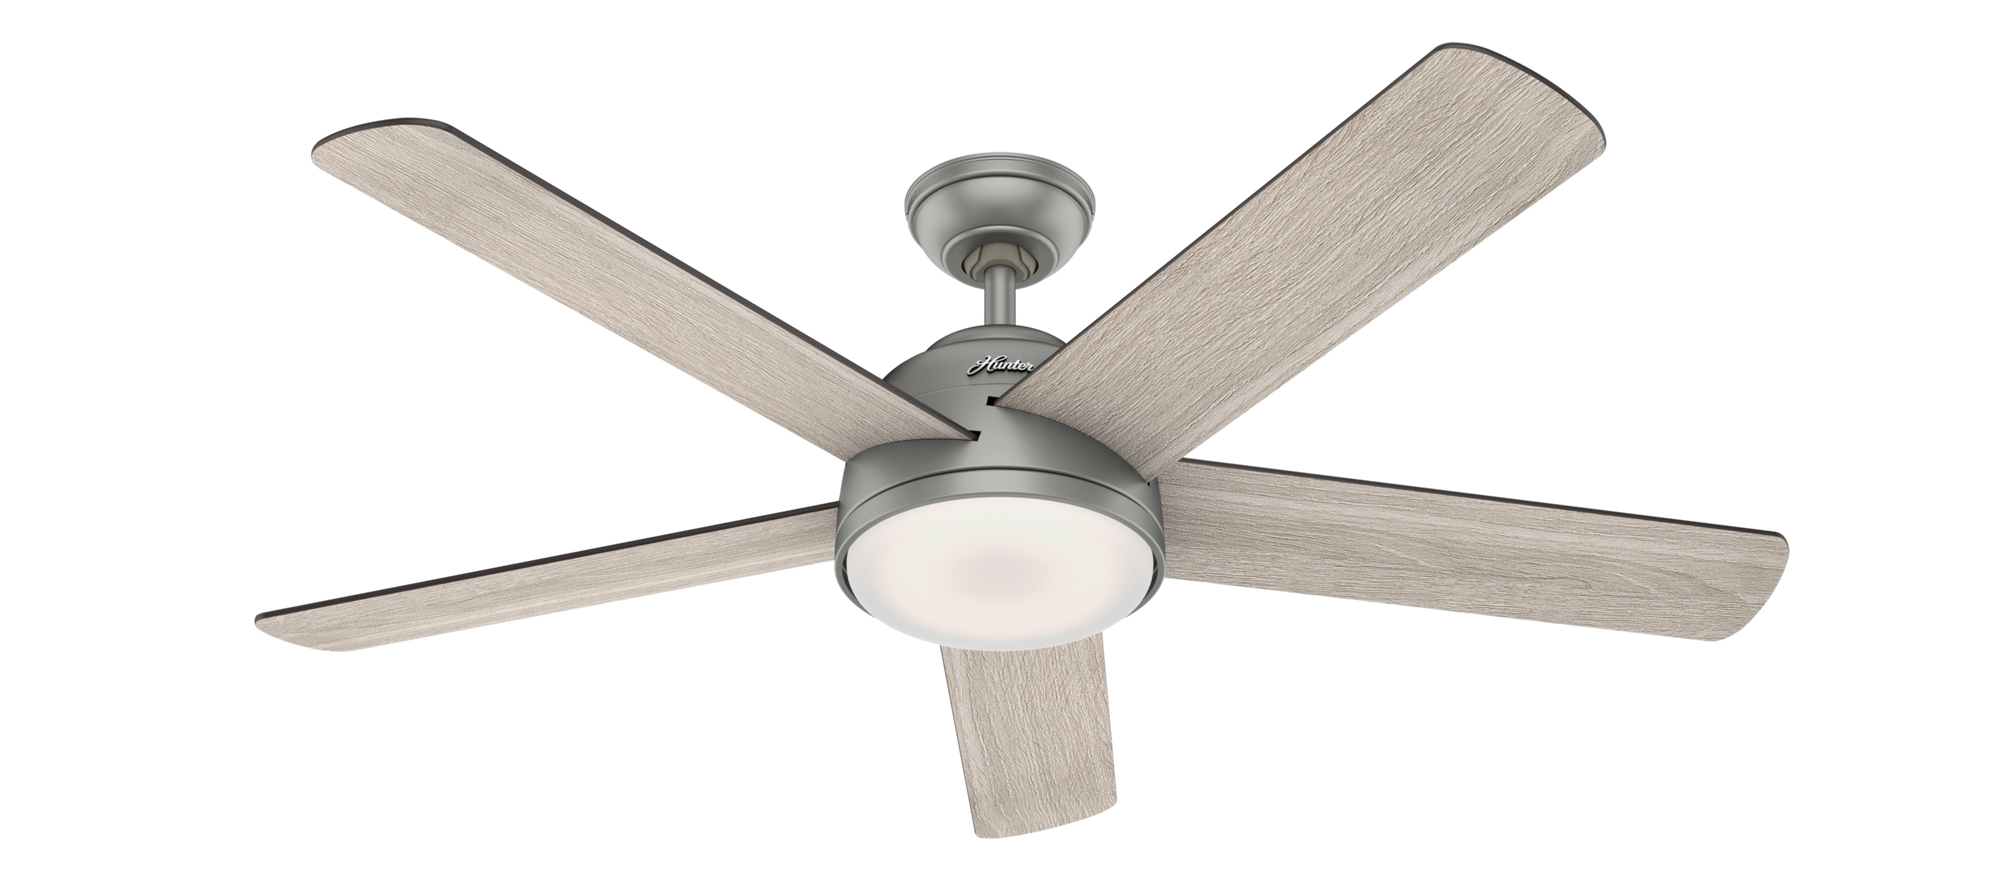 Hunter Indoor Romulus Ceiling Fan with LED LightJD inch, Brushed Nickel/Chrome, 59480